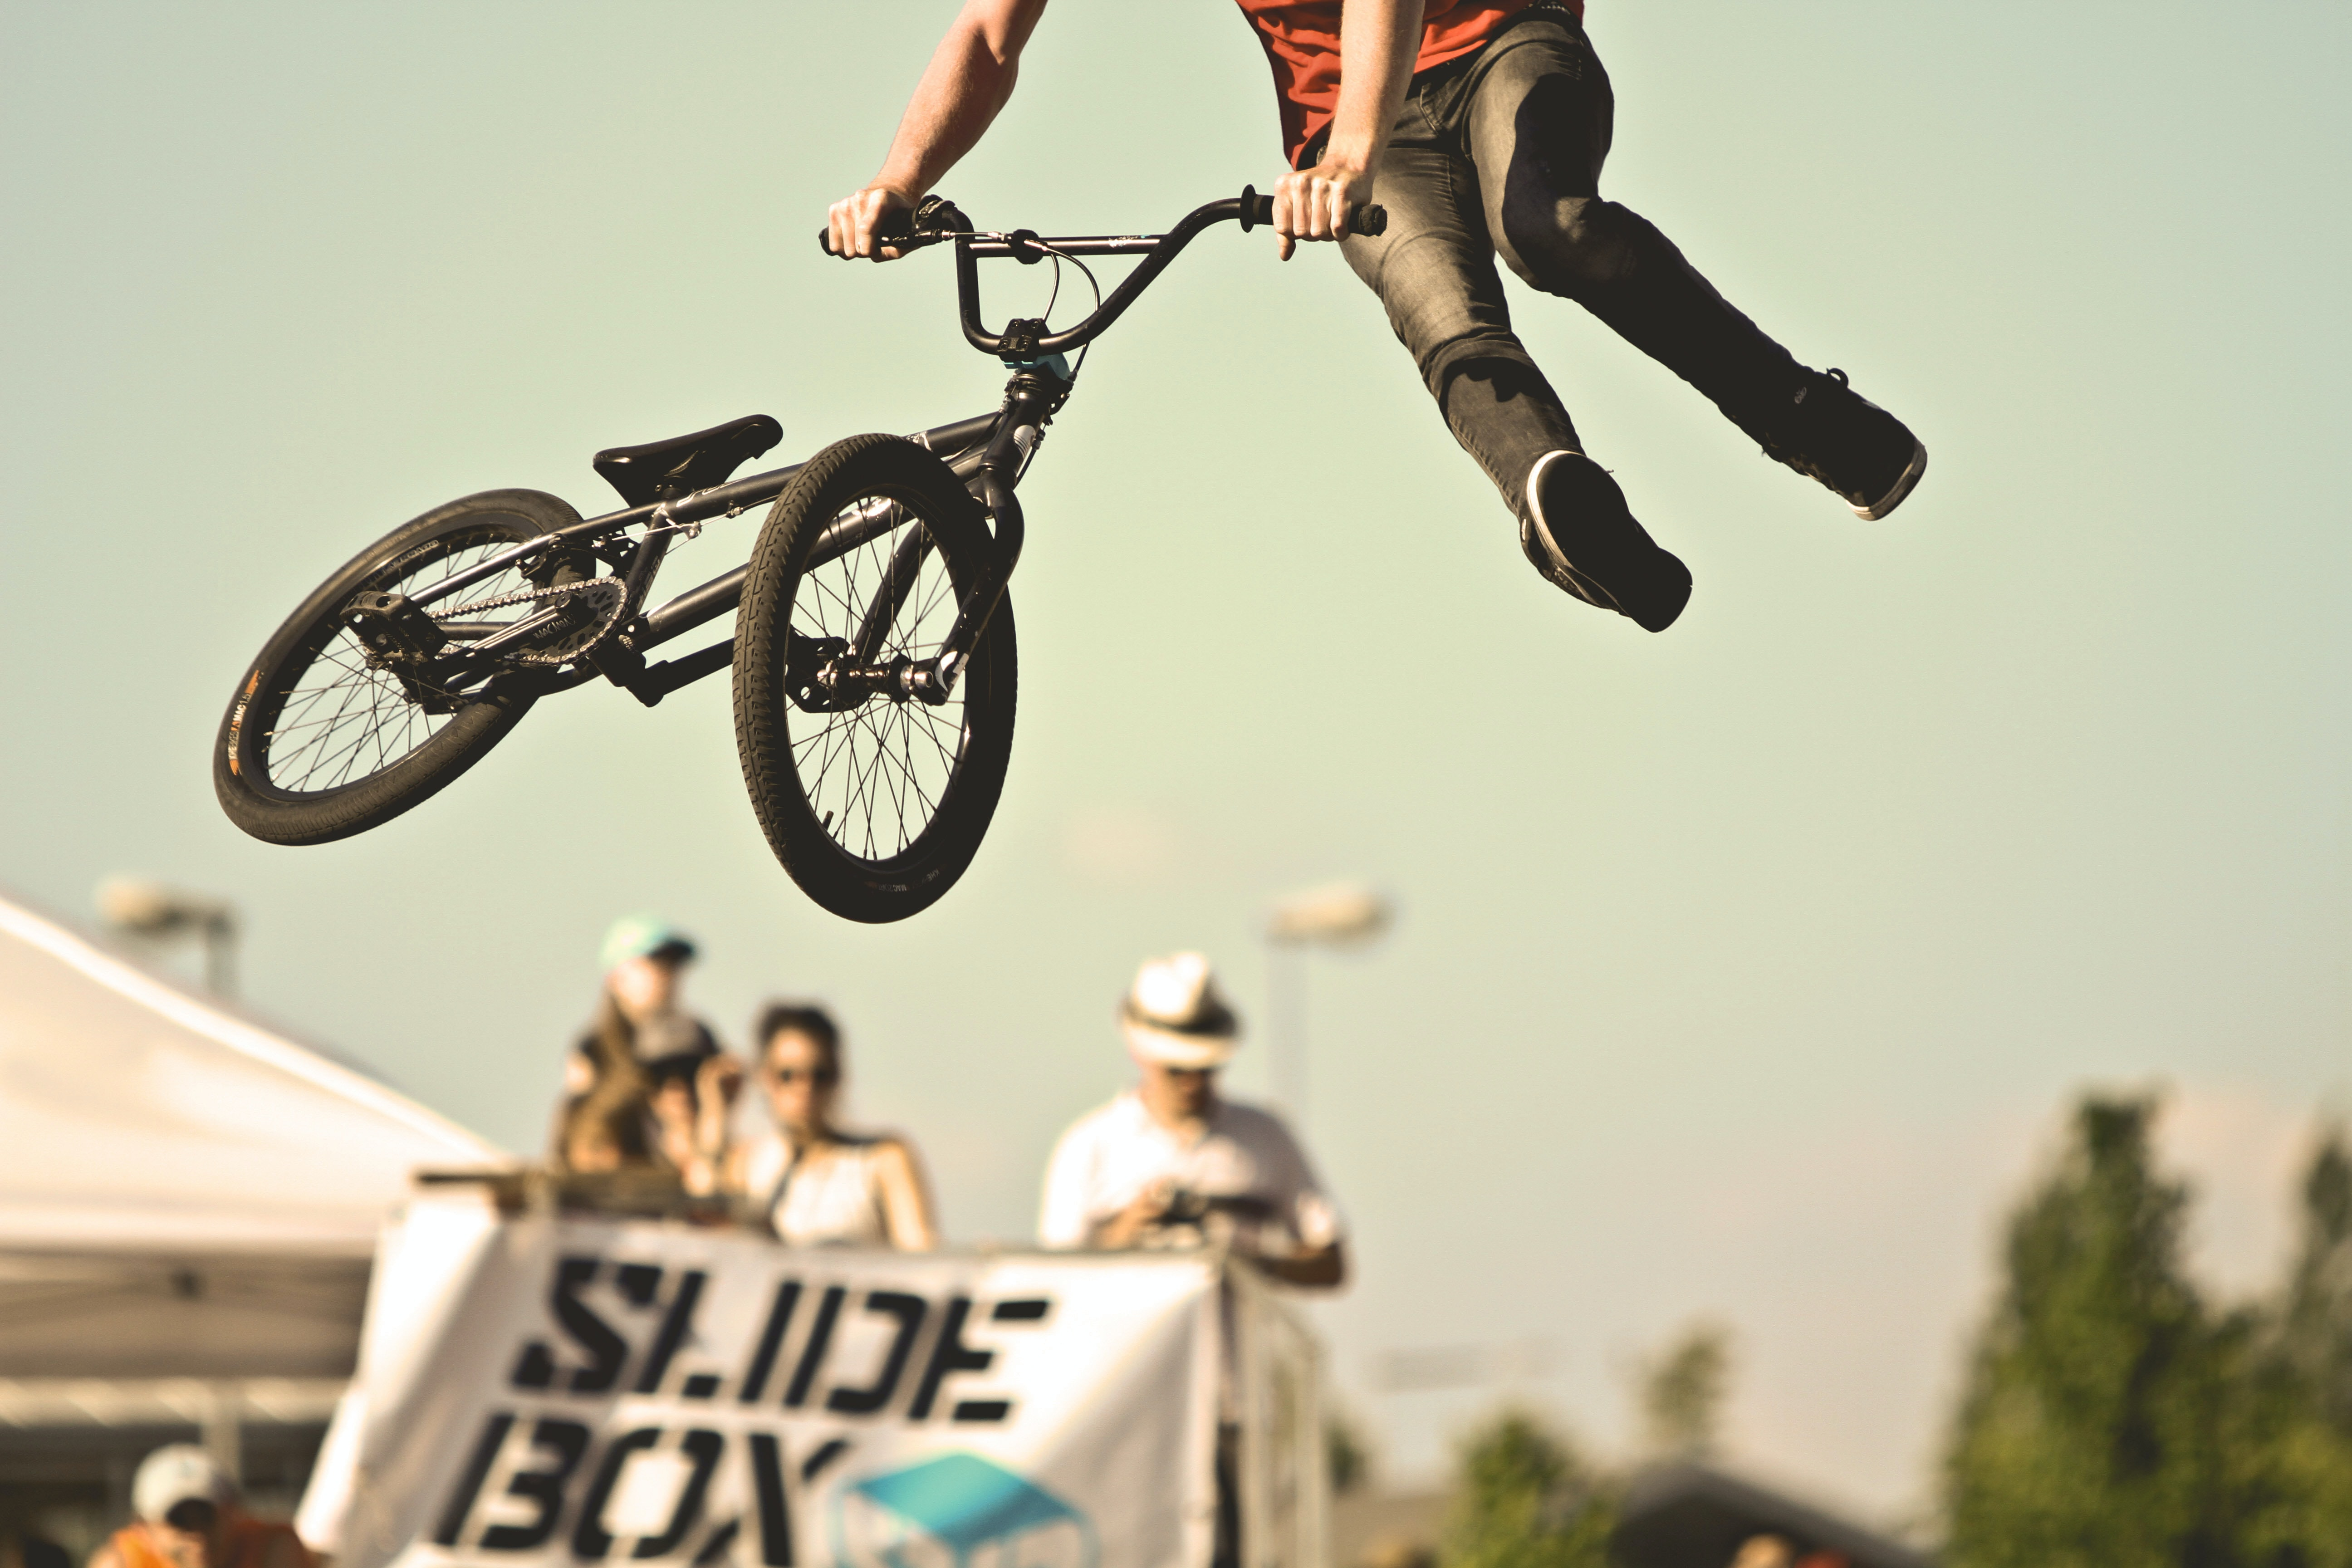 person doing BMX tricks